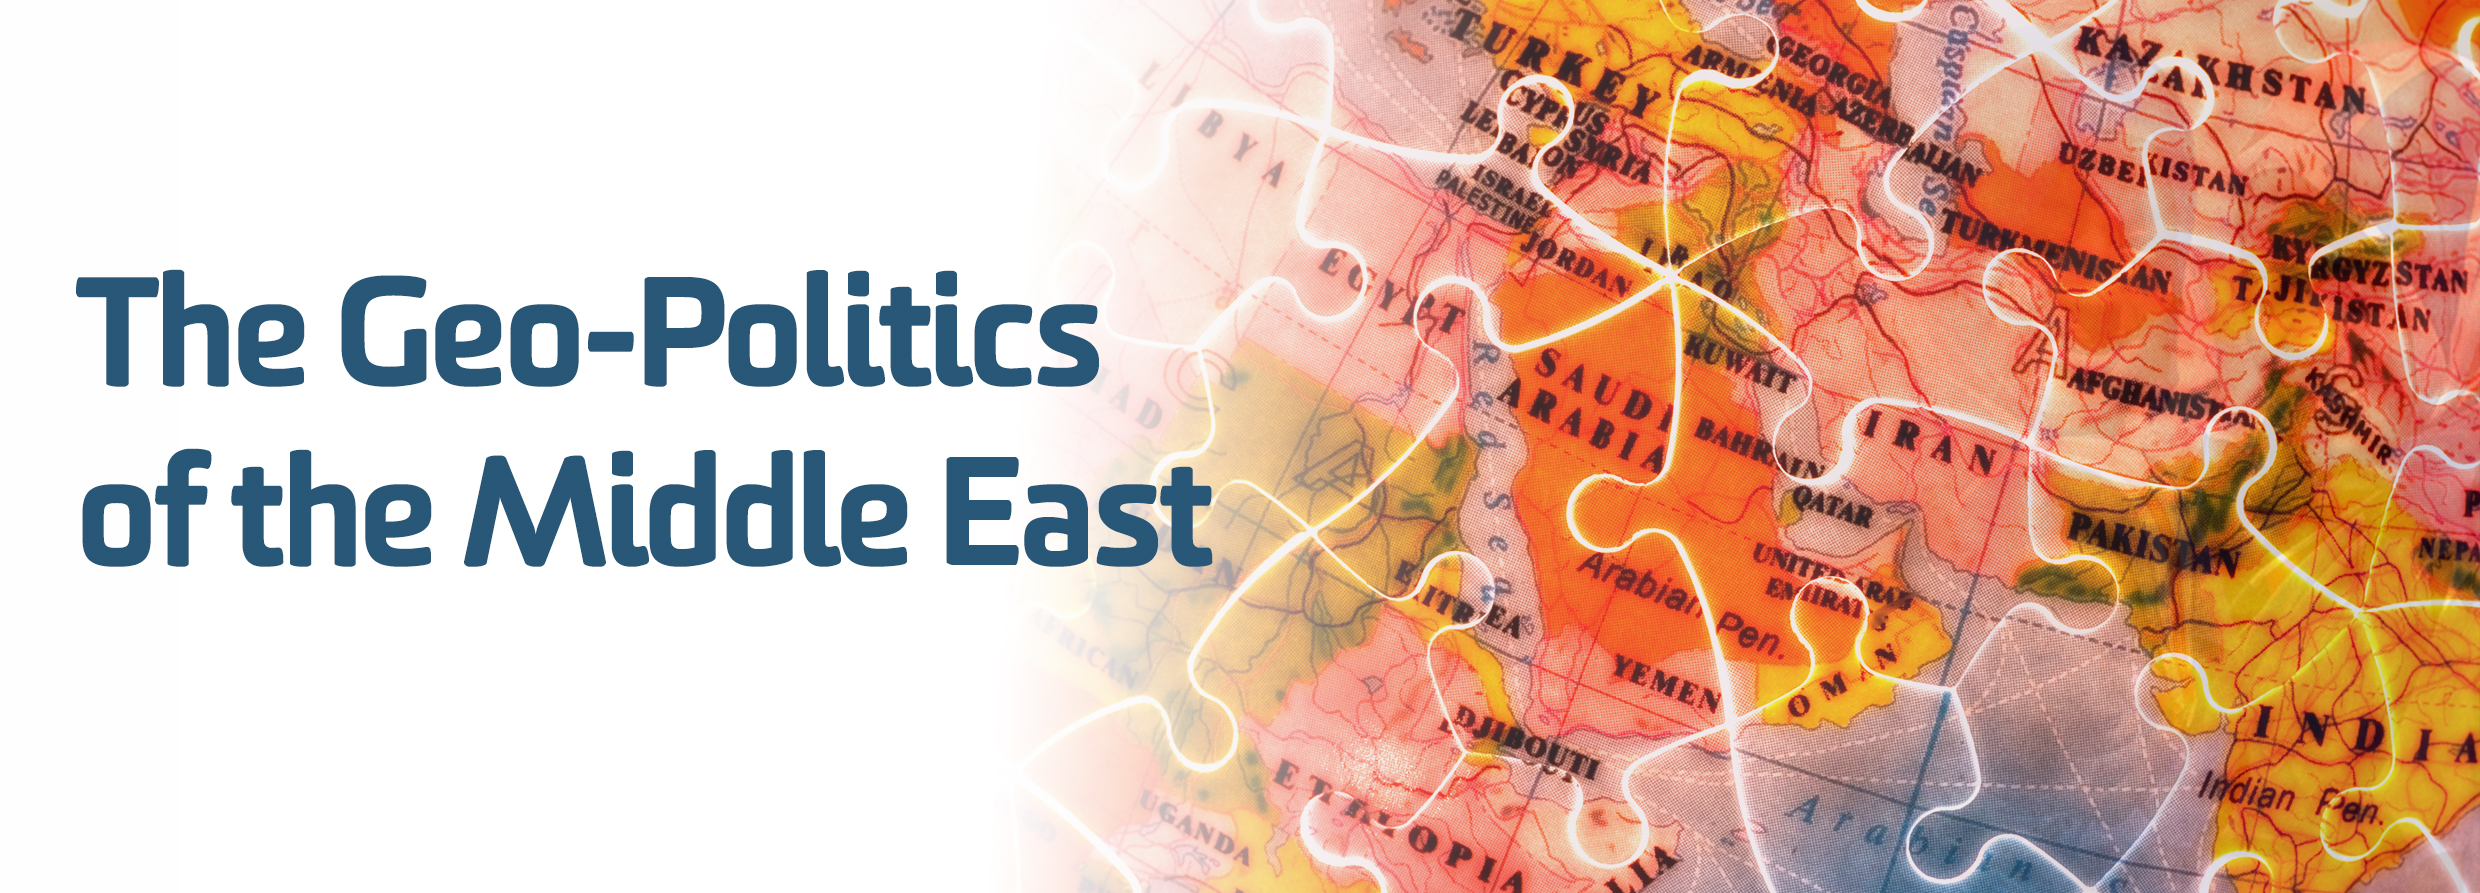 international relations of the middle east This interdisciplinary resource brings together important works from the fields of international relations theory and middle east studies - it promotes a stronger dialogue and cross-fertilisation between the two areas of study.